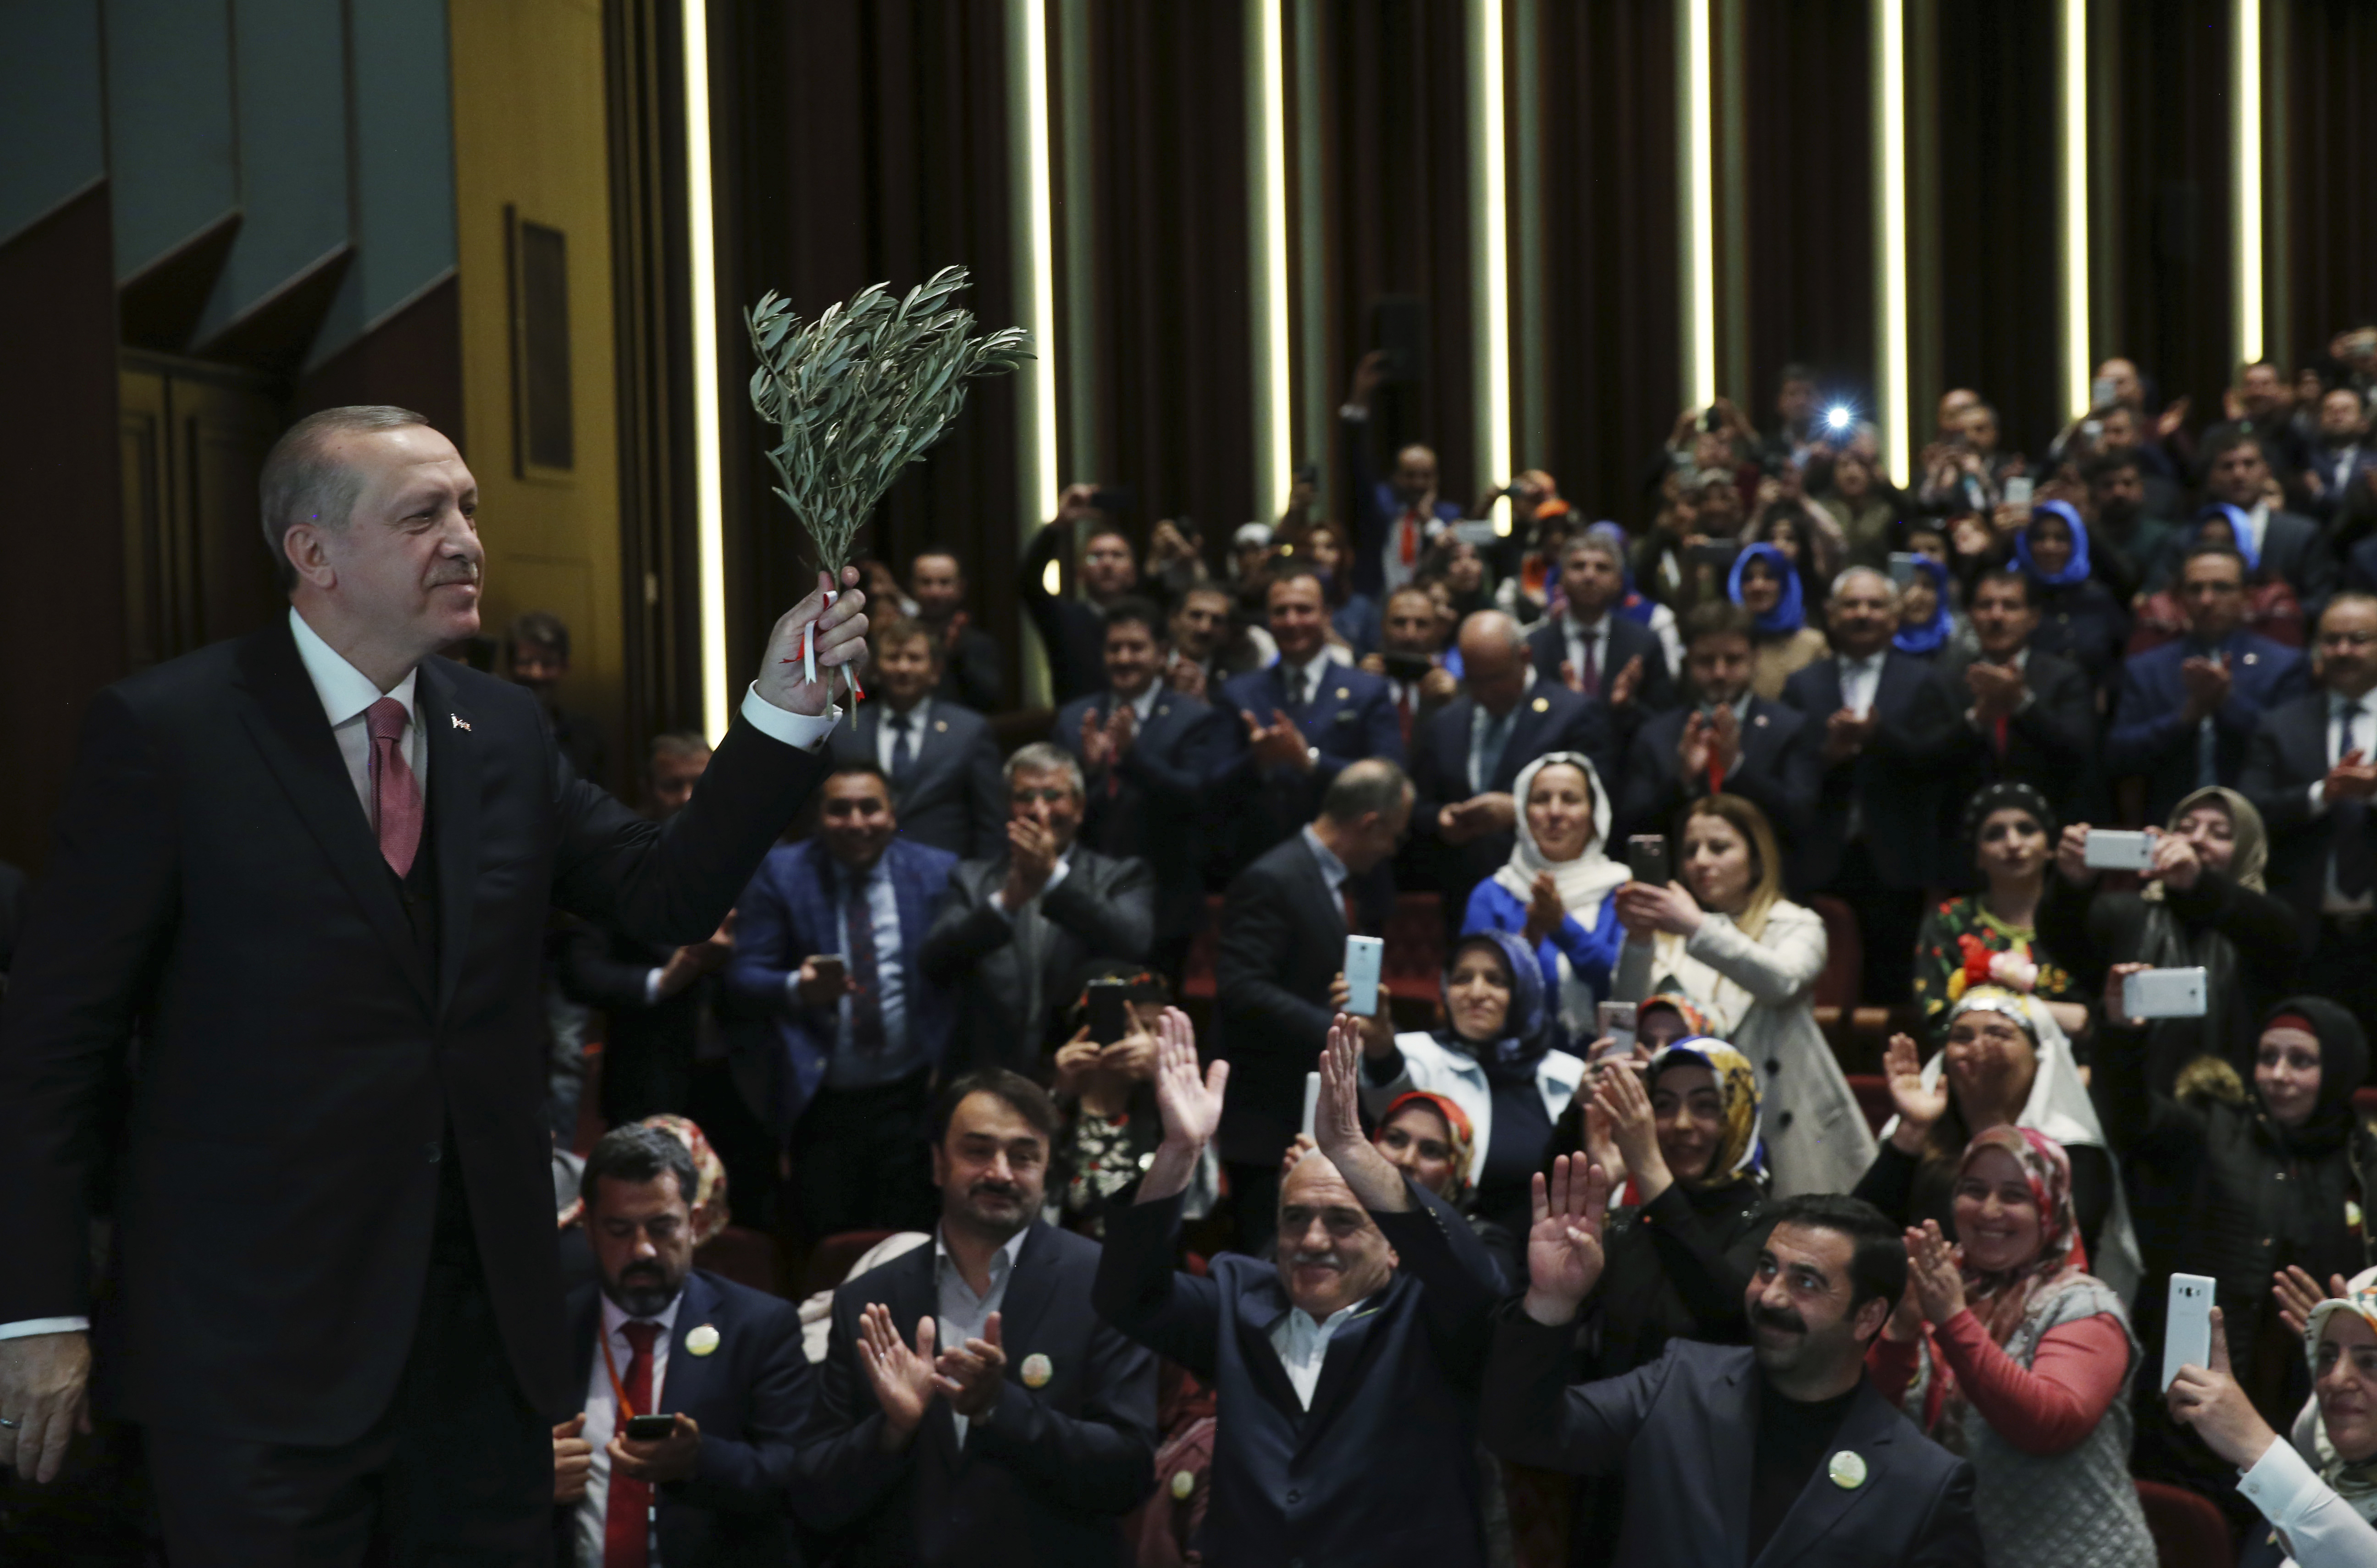 Turkey's President Recep Tayyip Erdogan, holding an olive branch arrives to deliver a speech at an event in Ankara, Turkey, Feb. 20, 2018.